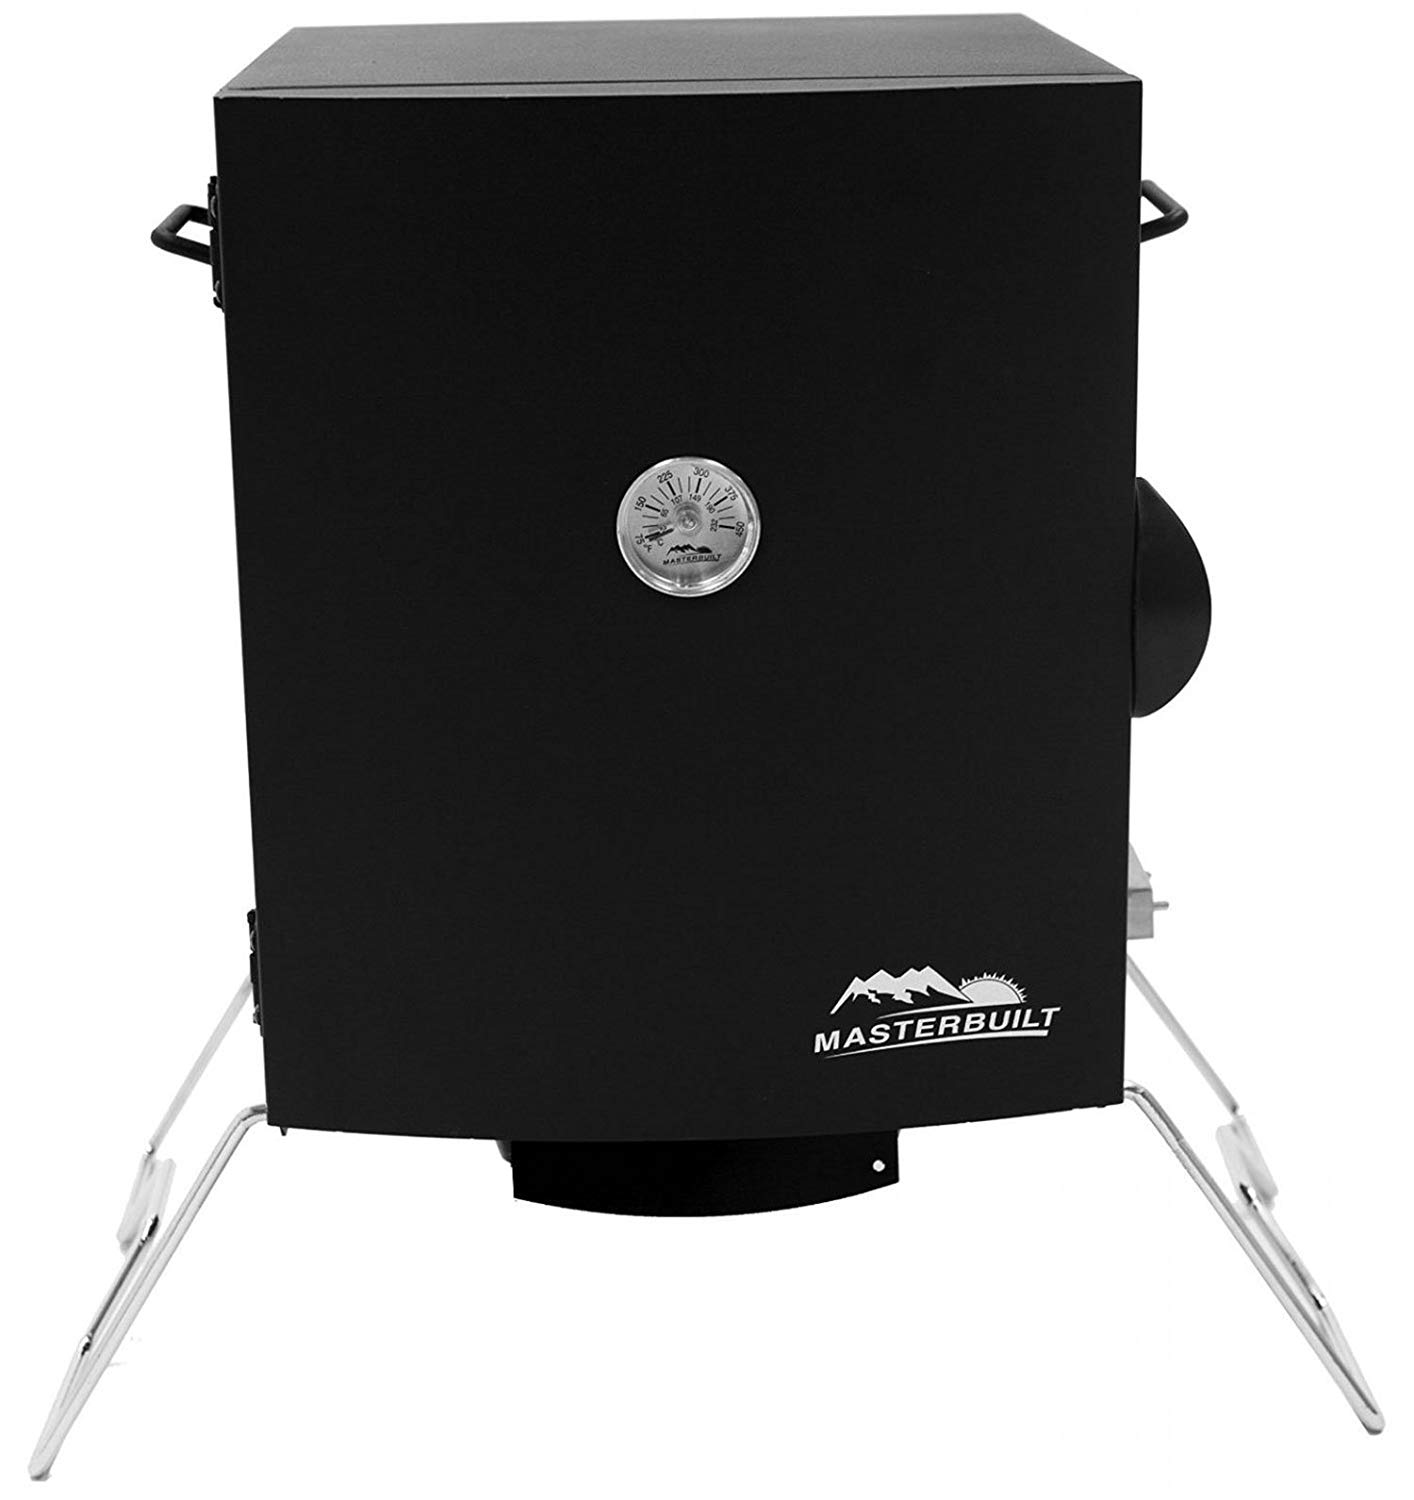 Masterbuilt 20073716 electric smoker